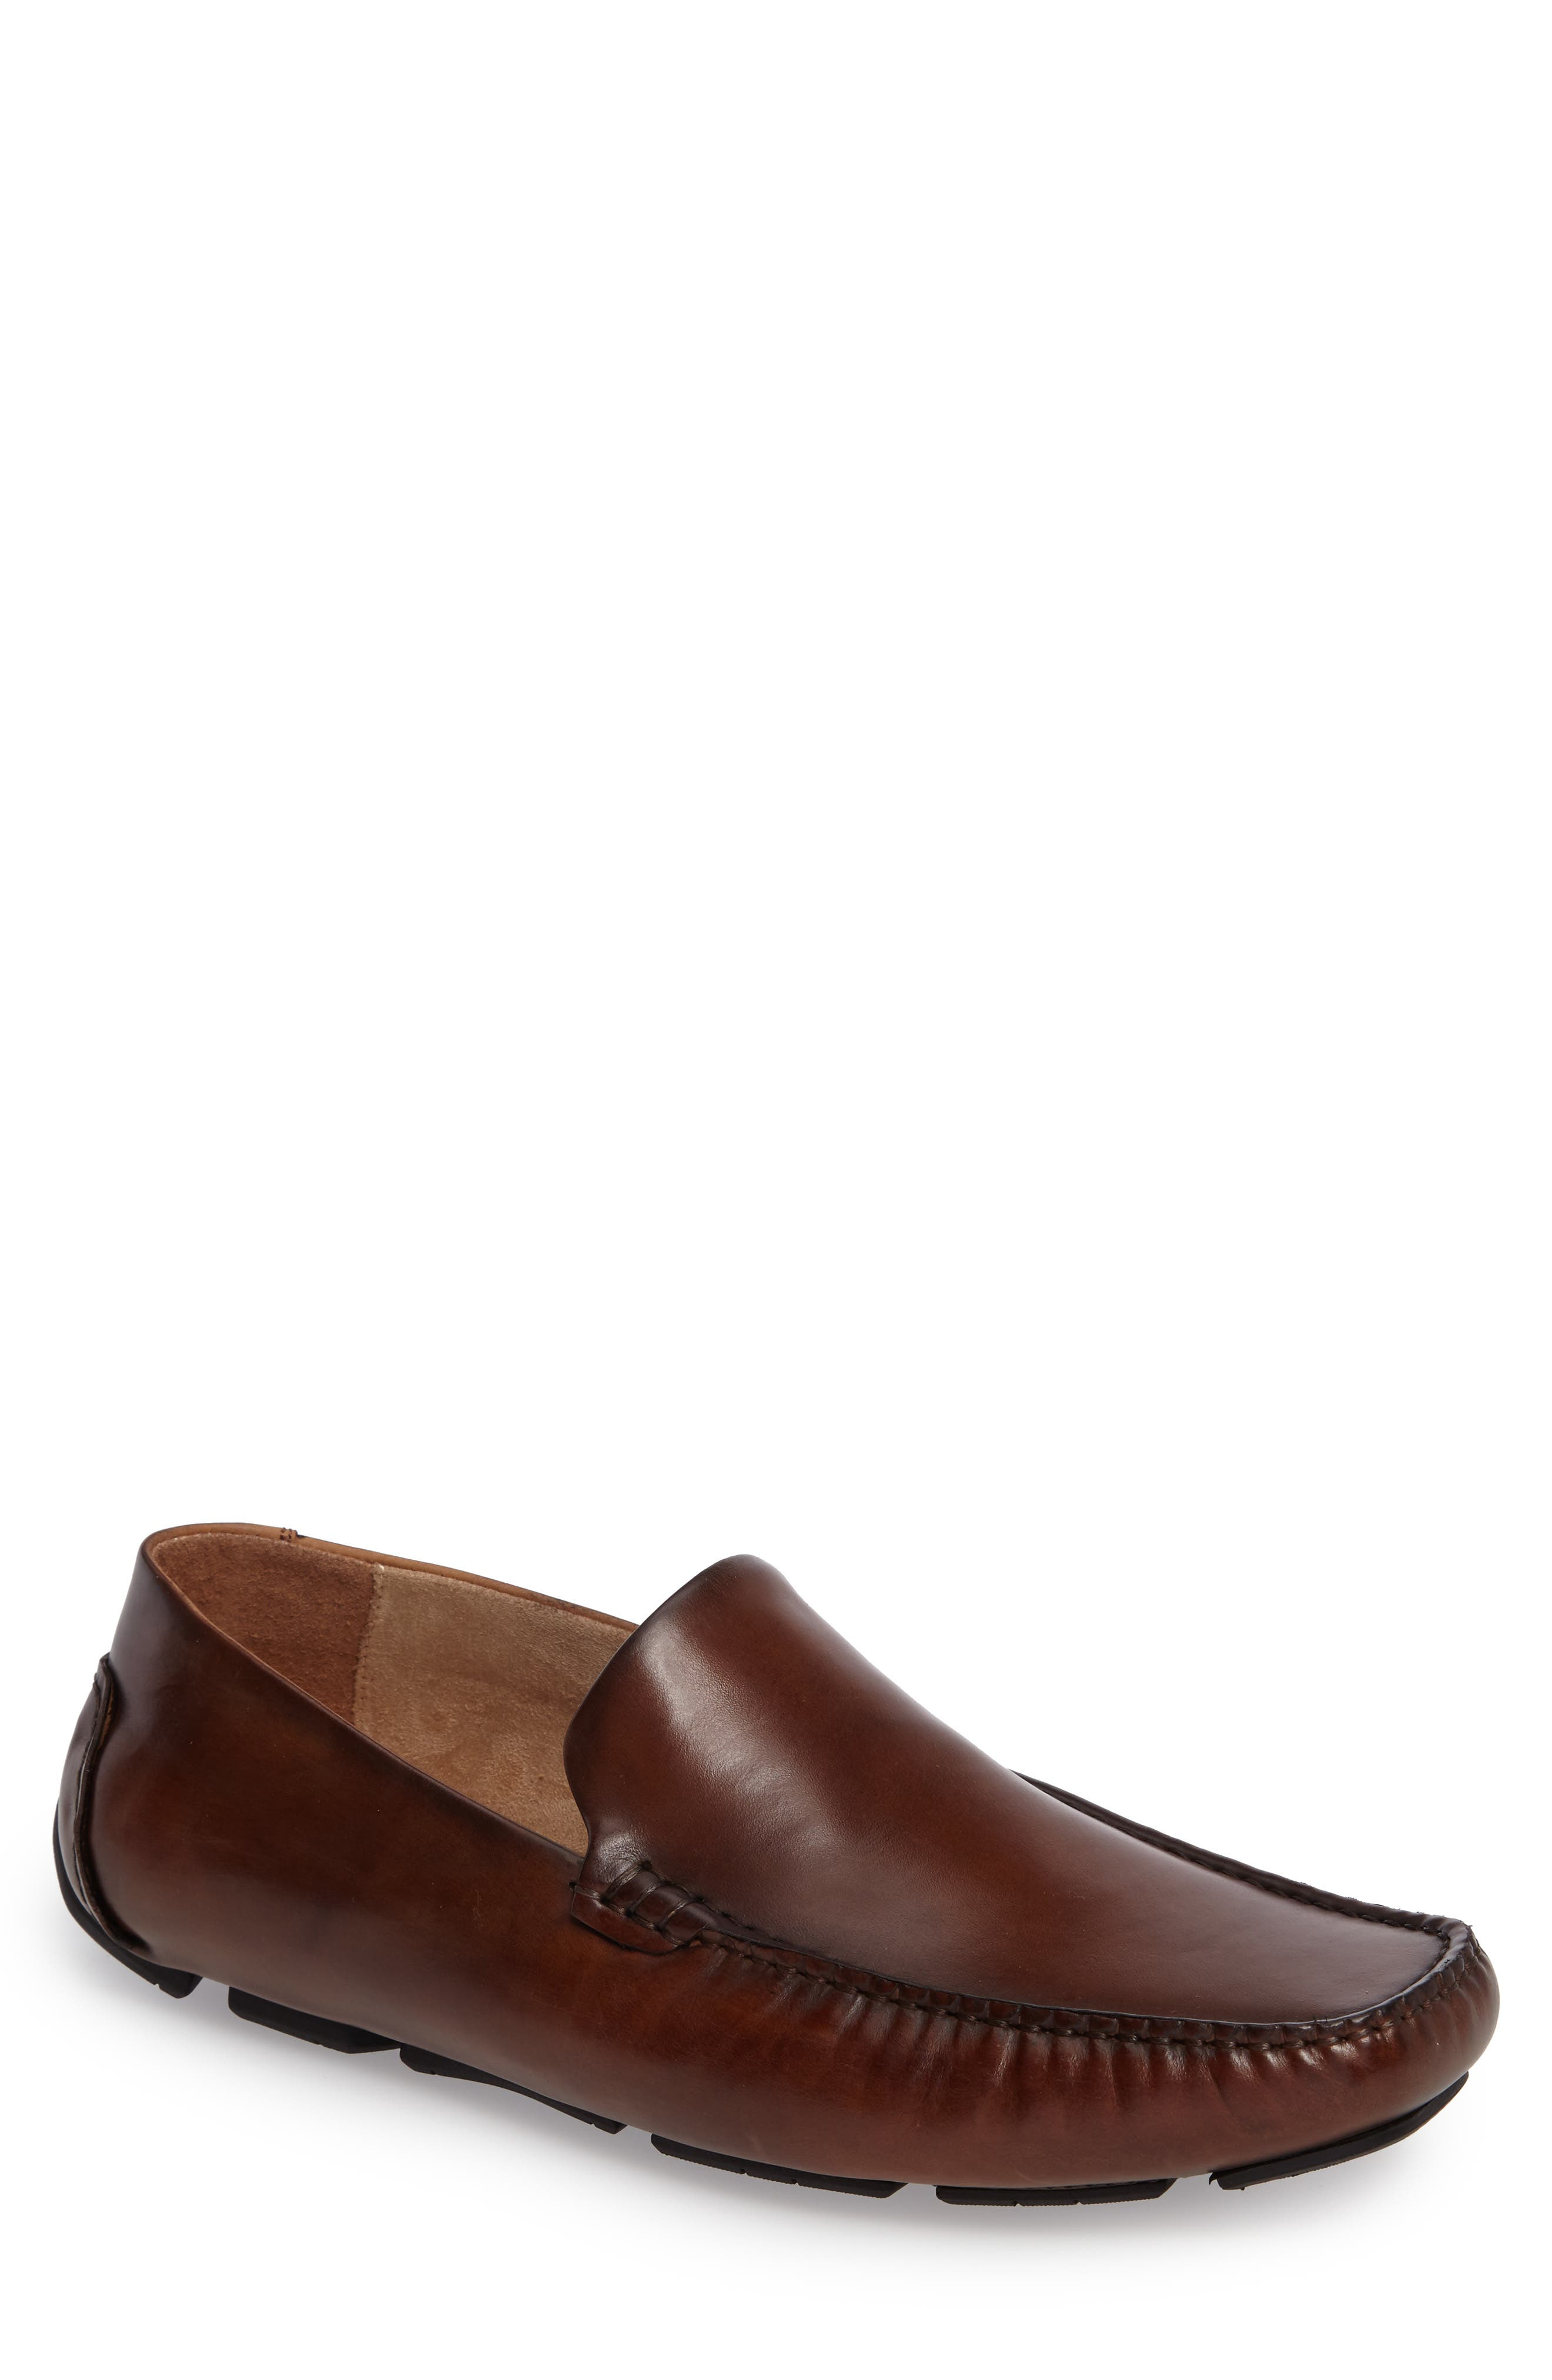 Main Image - Kenneth Cole New York Family Man Driving Shoe (Men)